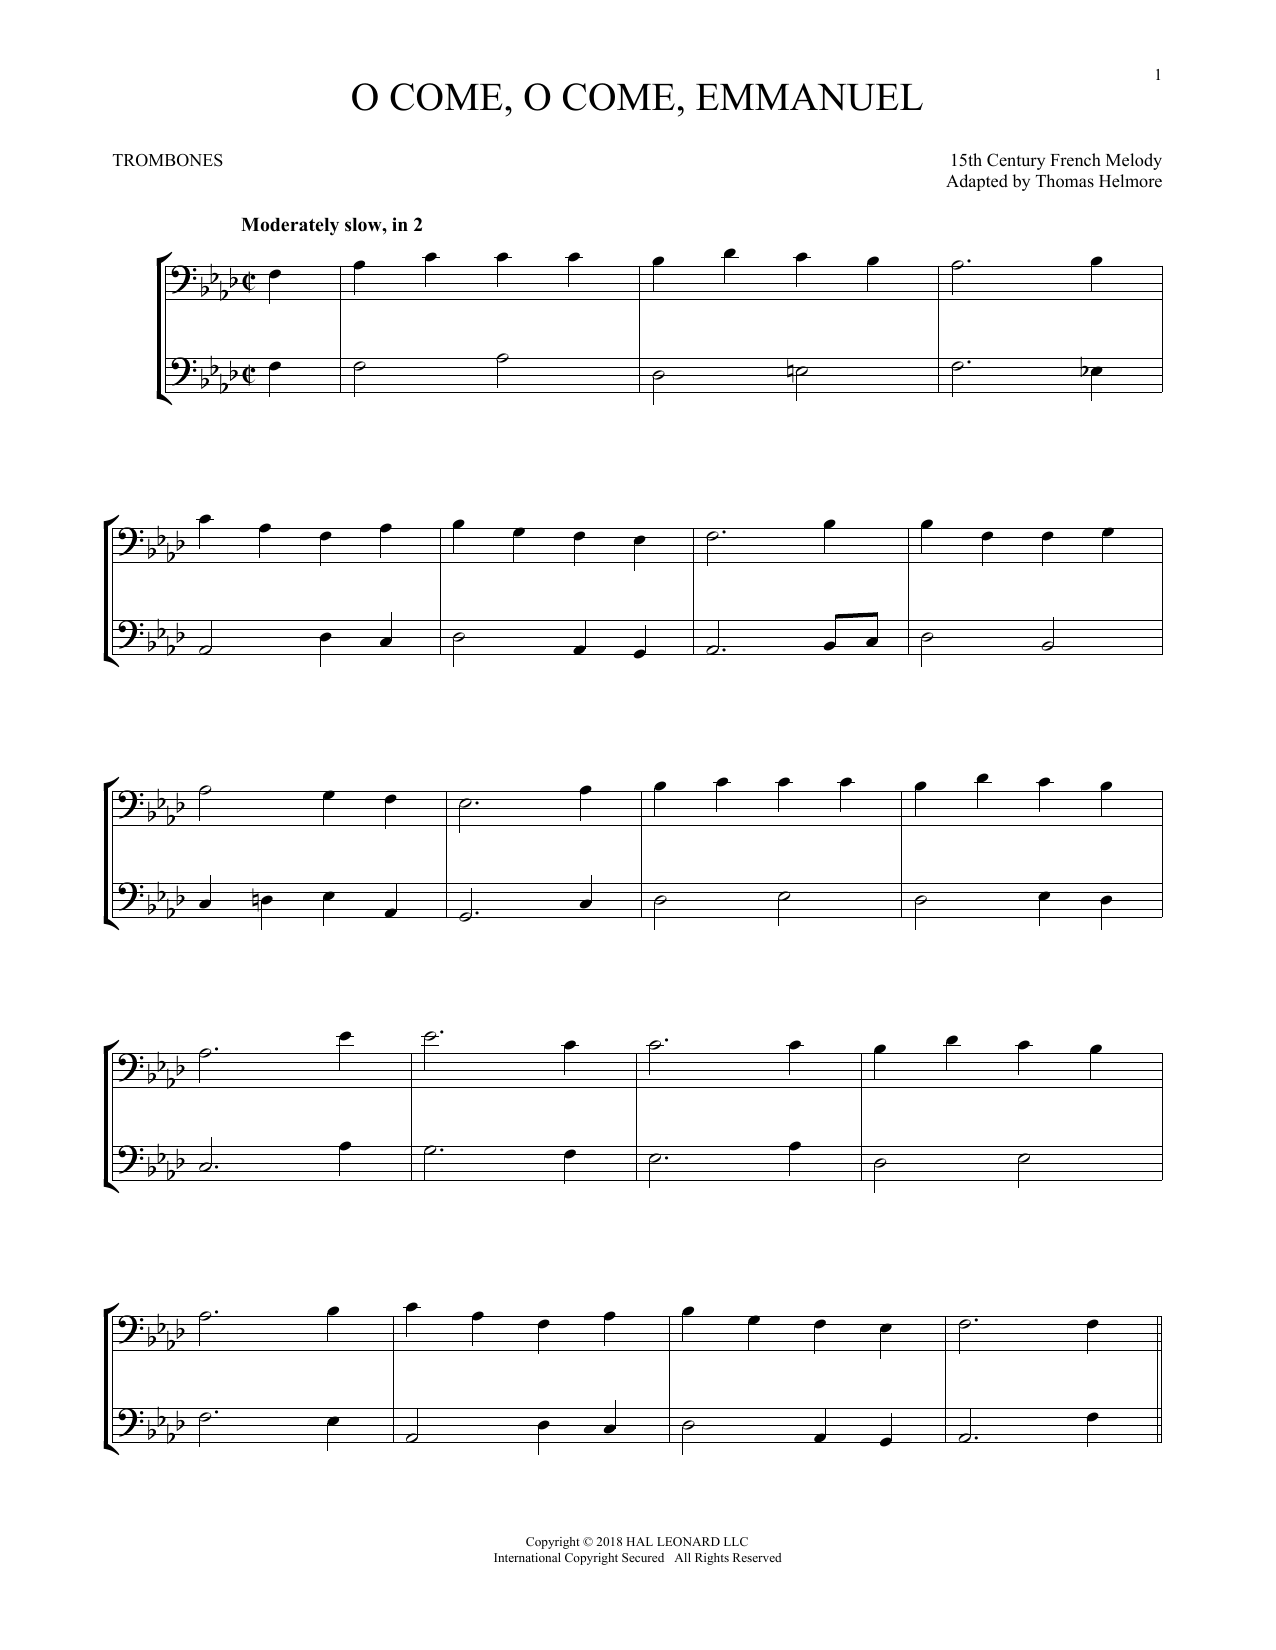 O Come, O Come, Emmanuel (Trombone Transcription)